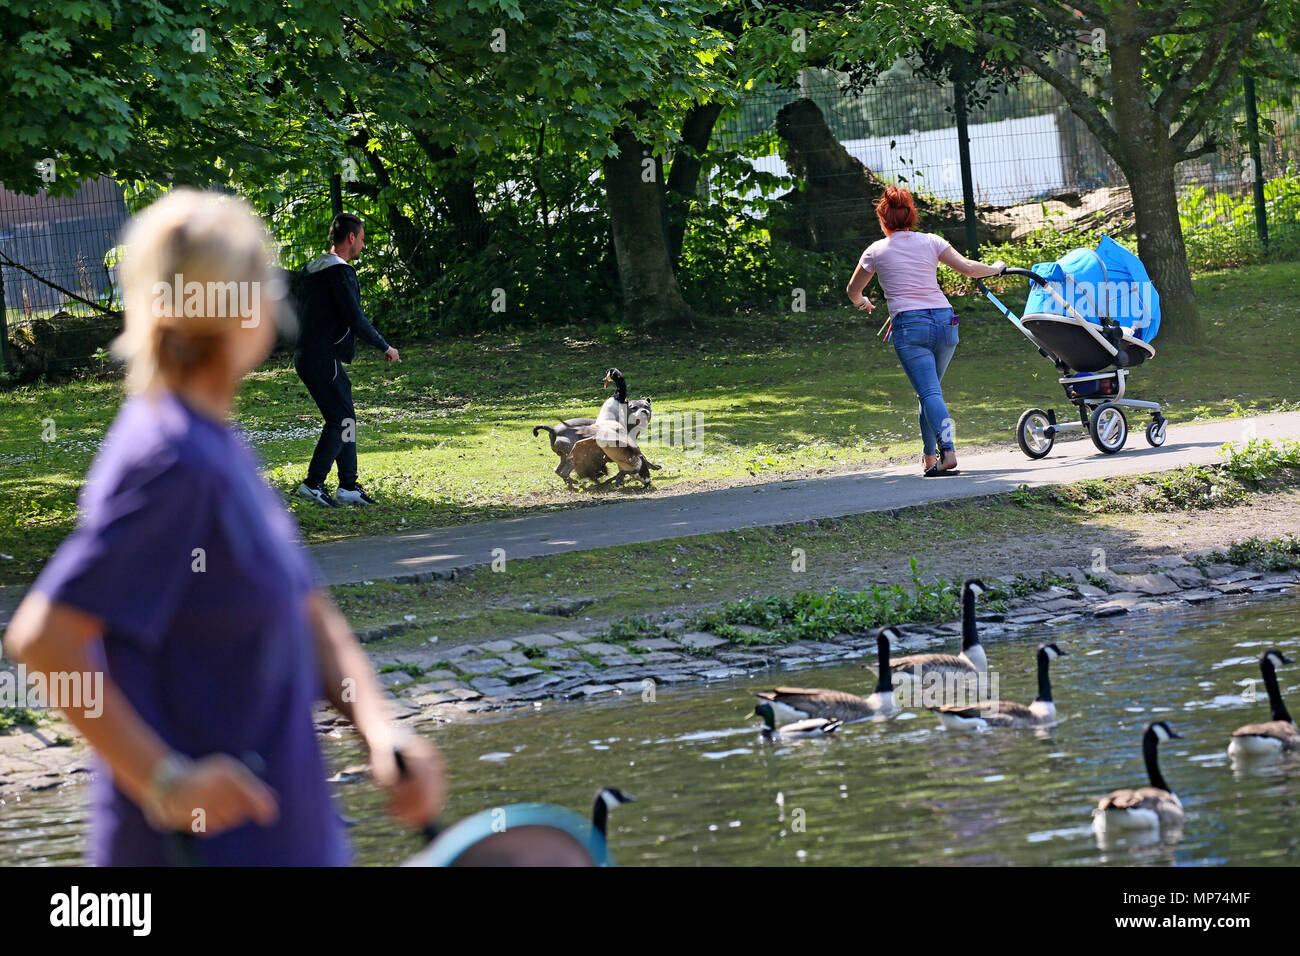 Heywood, UK. 21st May 2018. An out of control Staffordshire Bull Terrier attacking a Canadian goose.  The Geese are particularly defensive at this time of year due to protecting young Goslings, Queens Park, Heywood ,21st May, 2018 (C)Barbara Cook/Alamy Live News - Stock Image